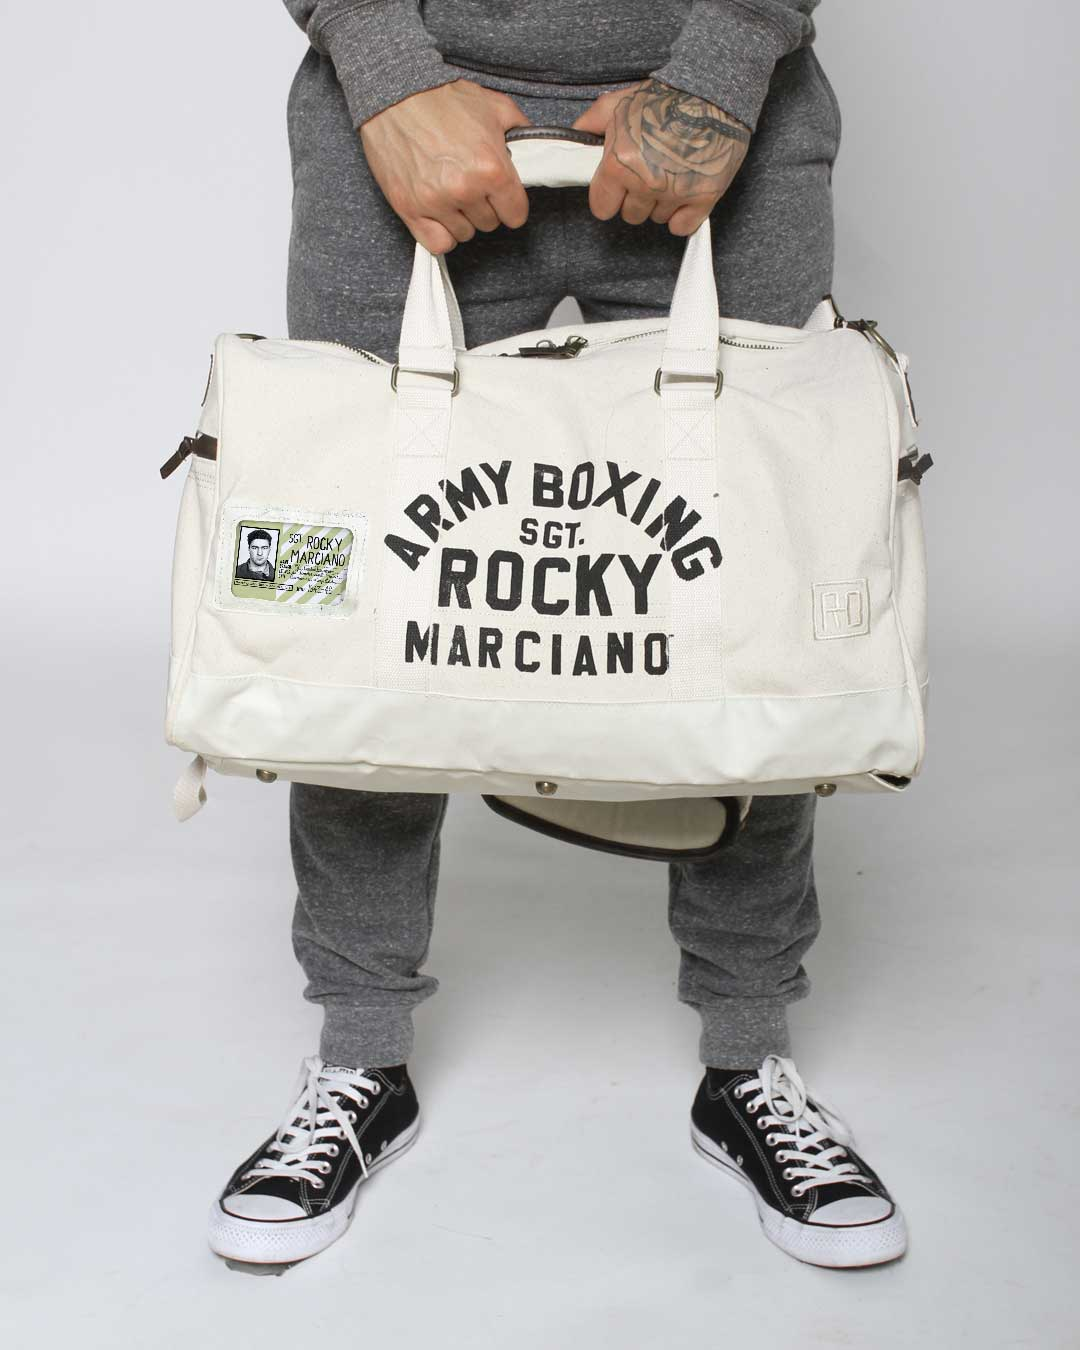 Rocky Marciano Army Boxing Duffle Bag - Copasetic Clothing Ltd. dba Roots of Fight